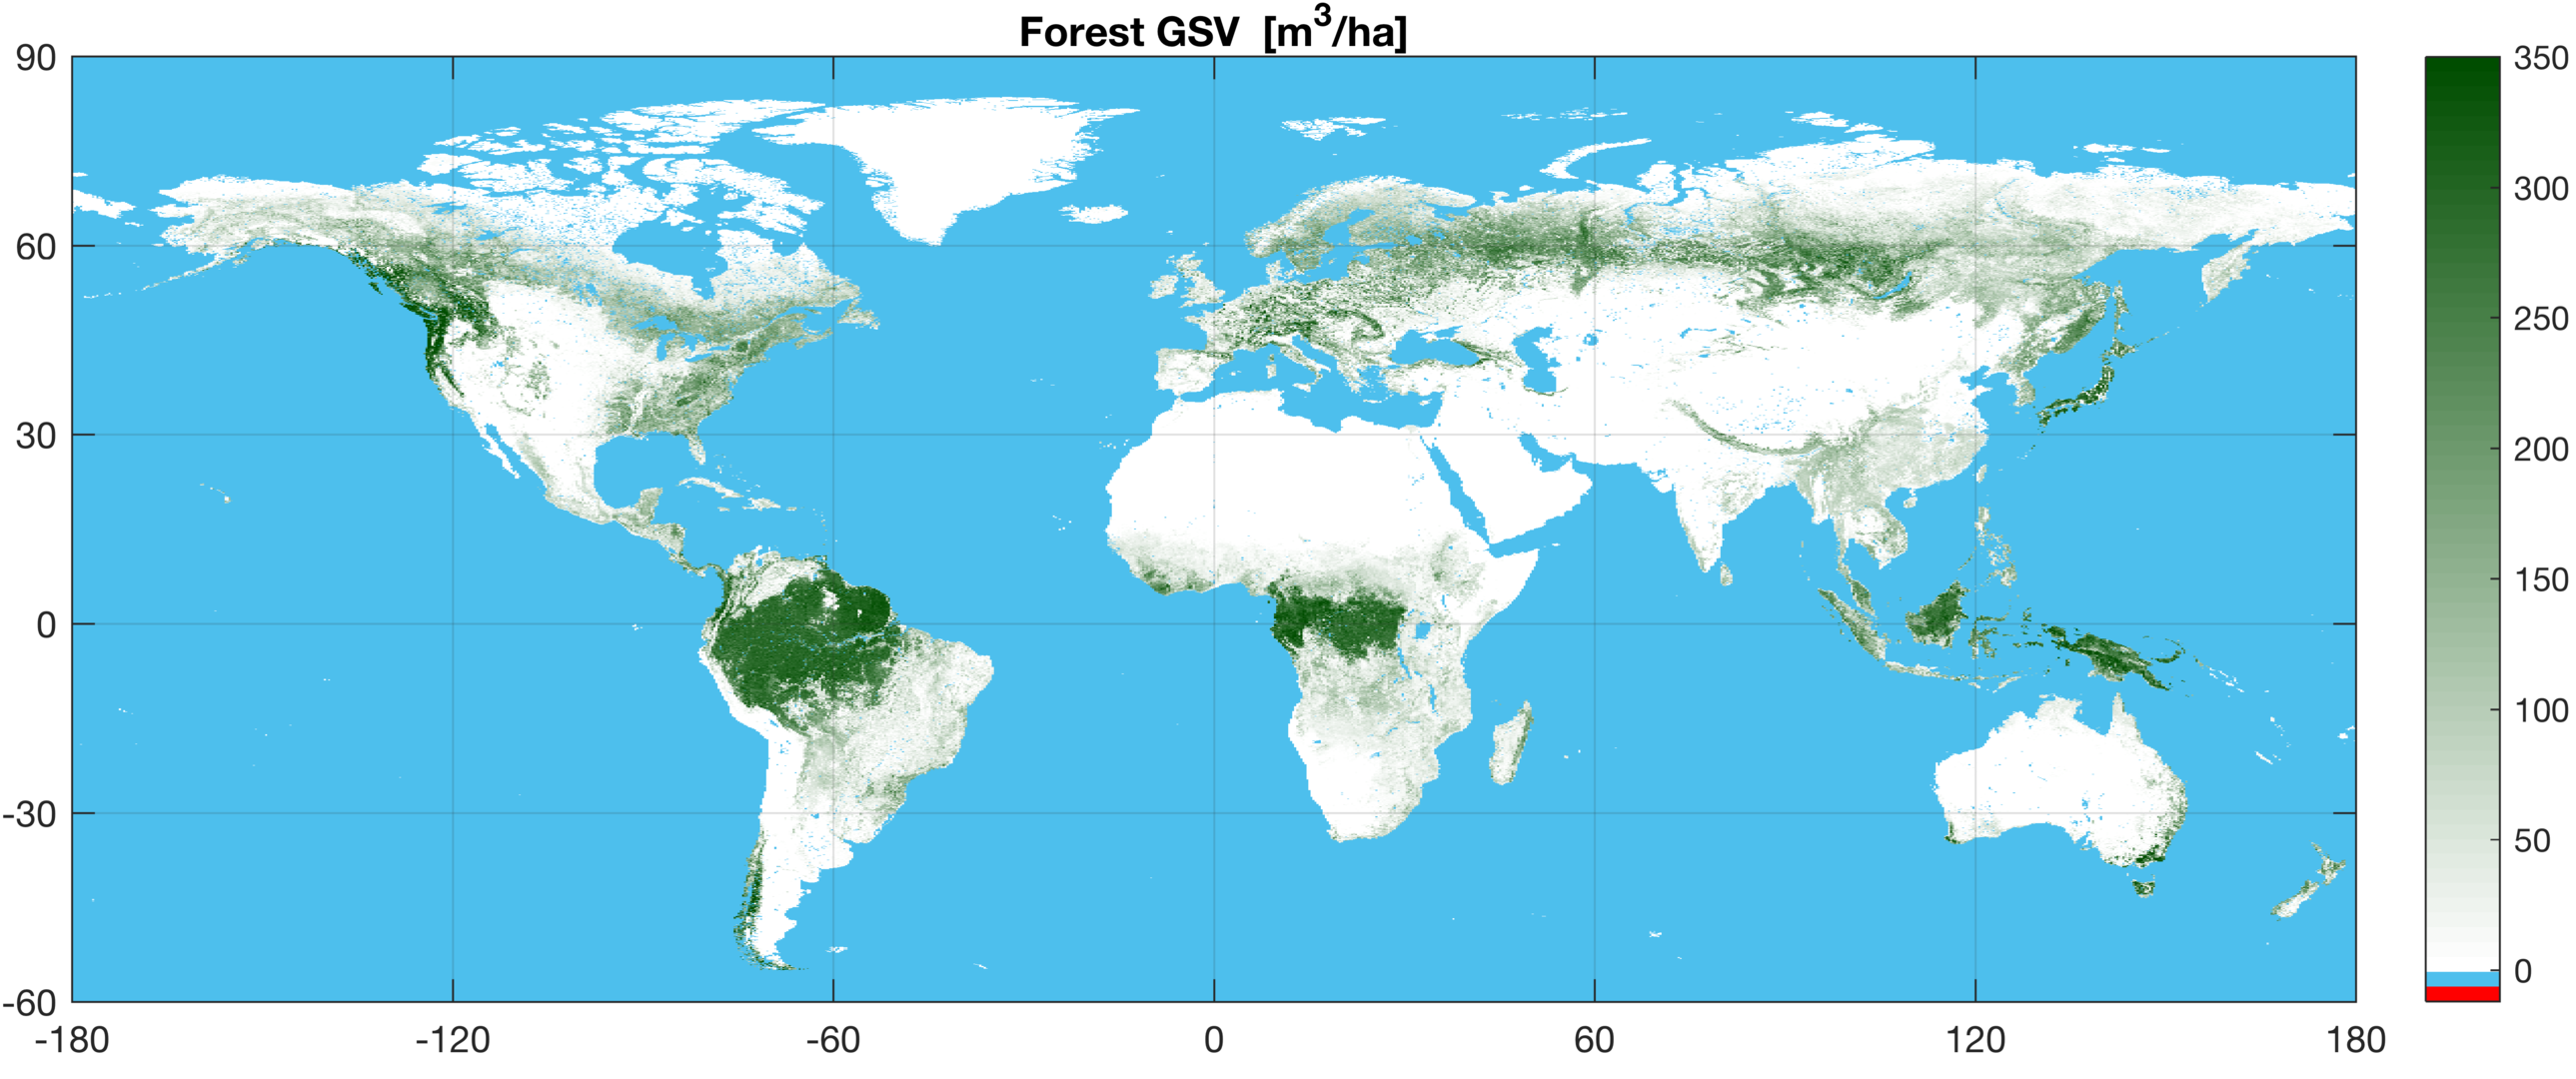 the forest world map Esa Mapping The World S Forests